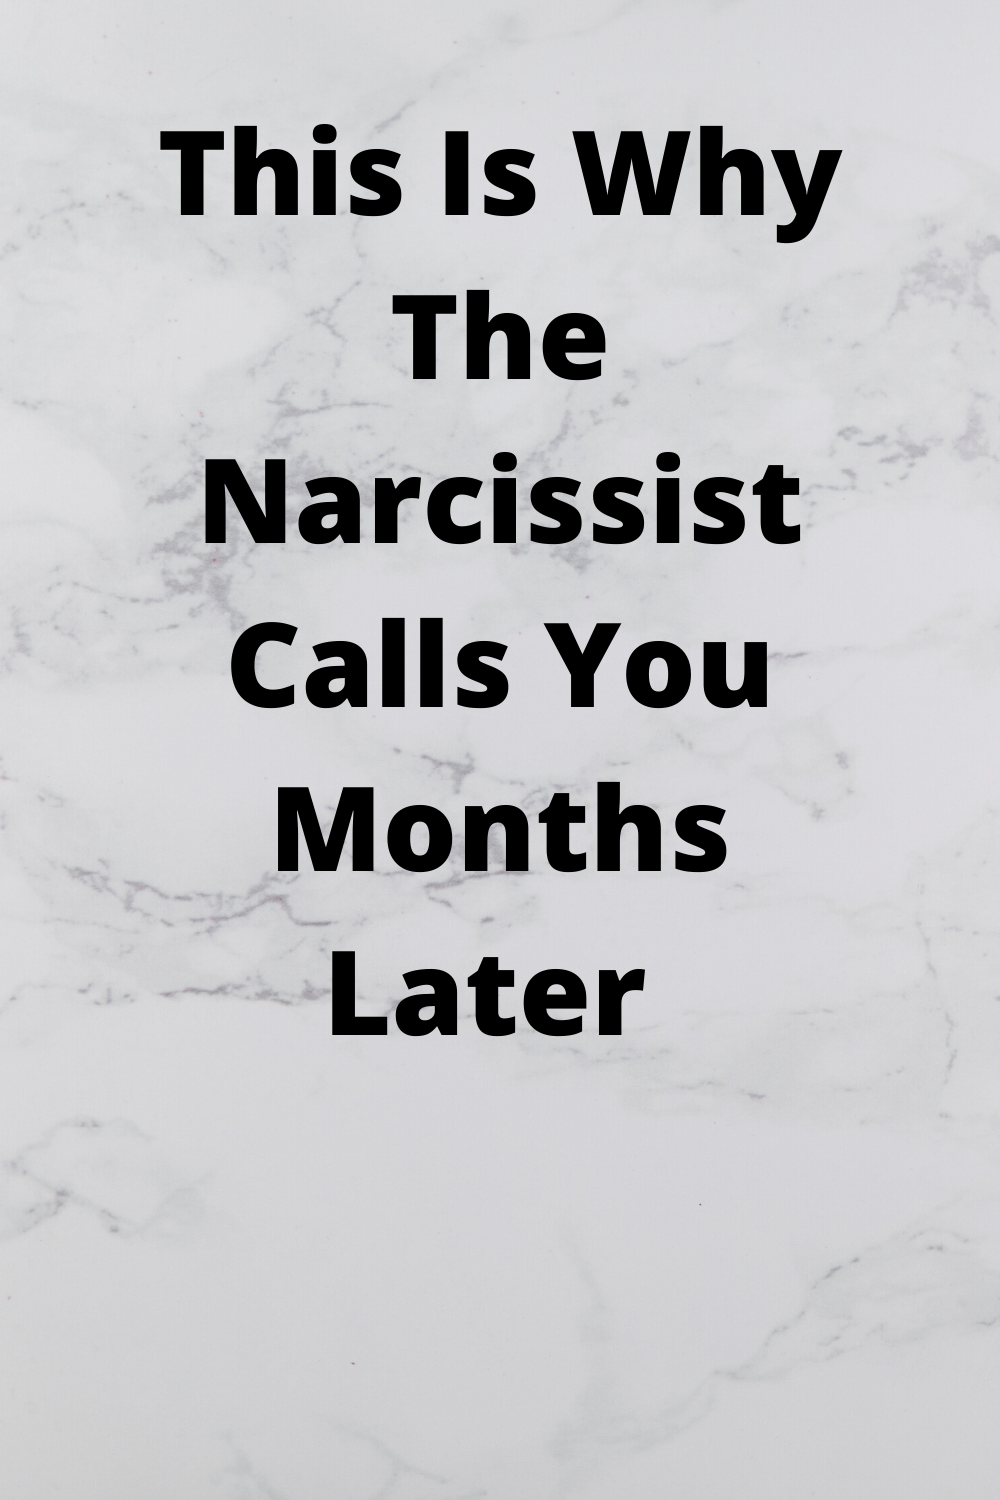 This Is Why The Narcissist Calls You Months Later in 2020